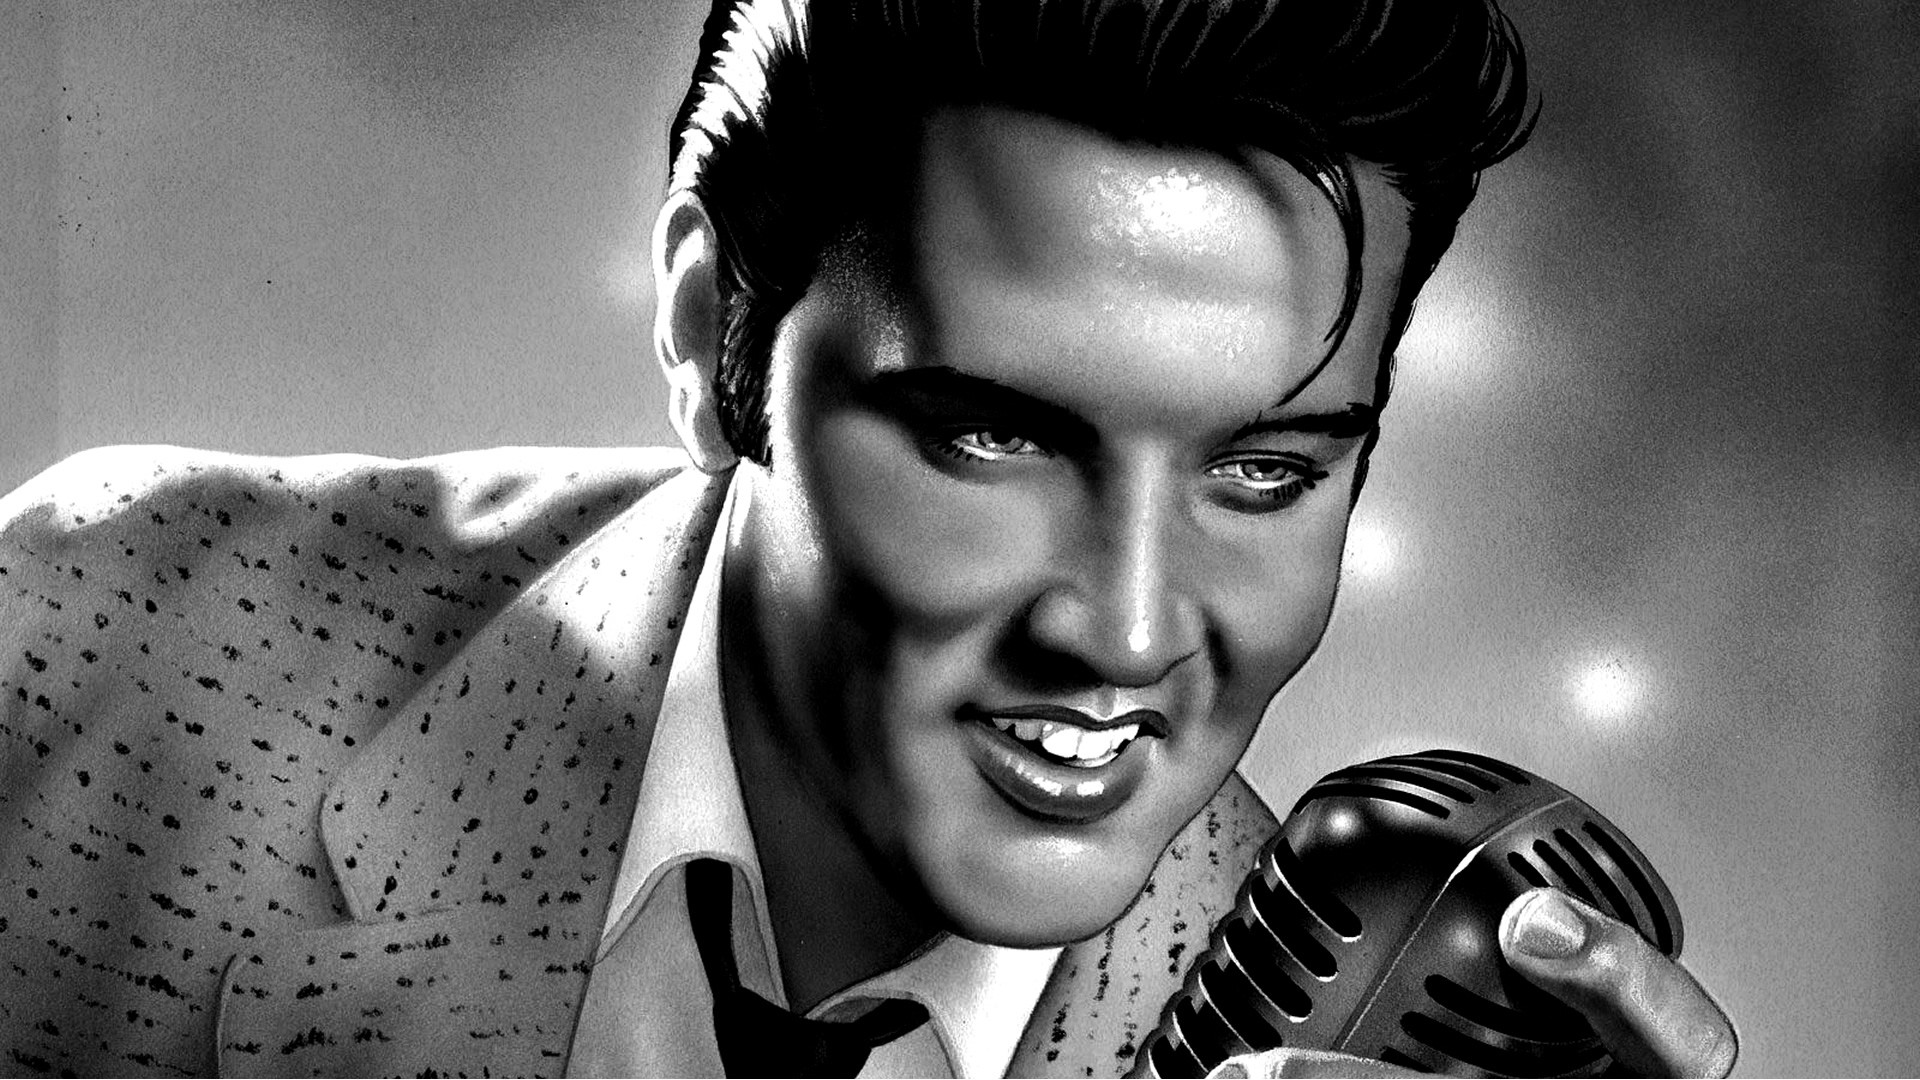 1920x1080 ... Elvis Presley Wallpaper and Background | 1280x800 | ID:431210 ...